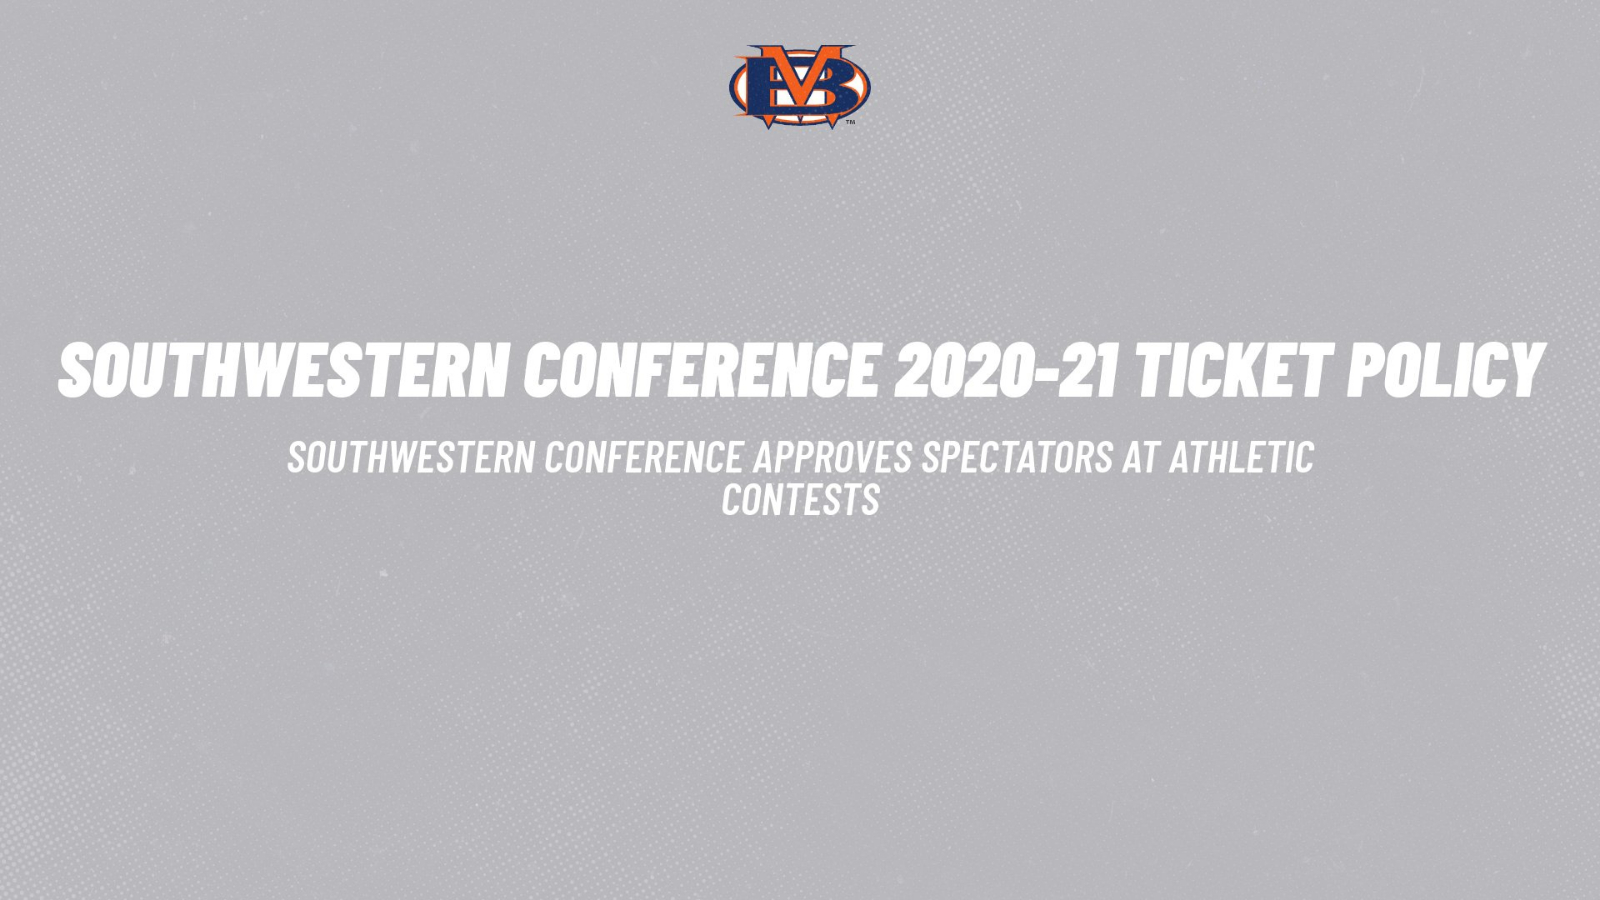 Southwestern Conference Ticket Policy